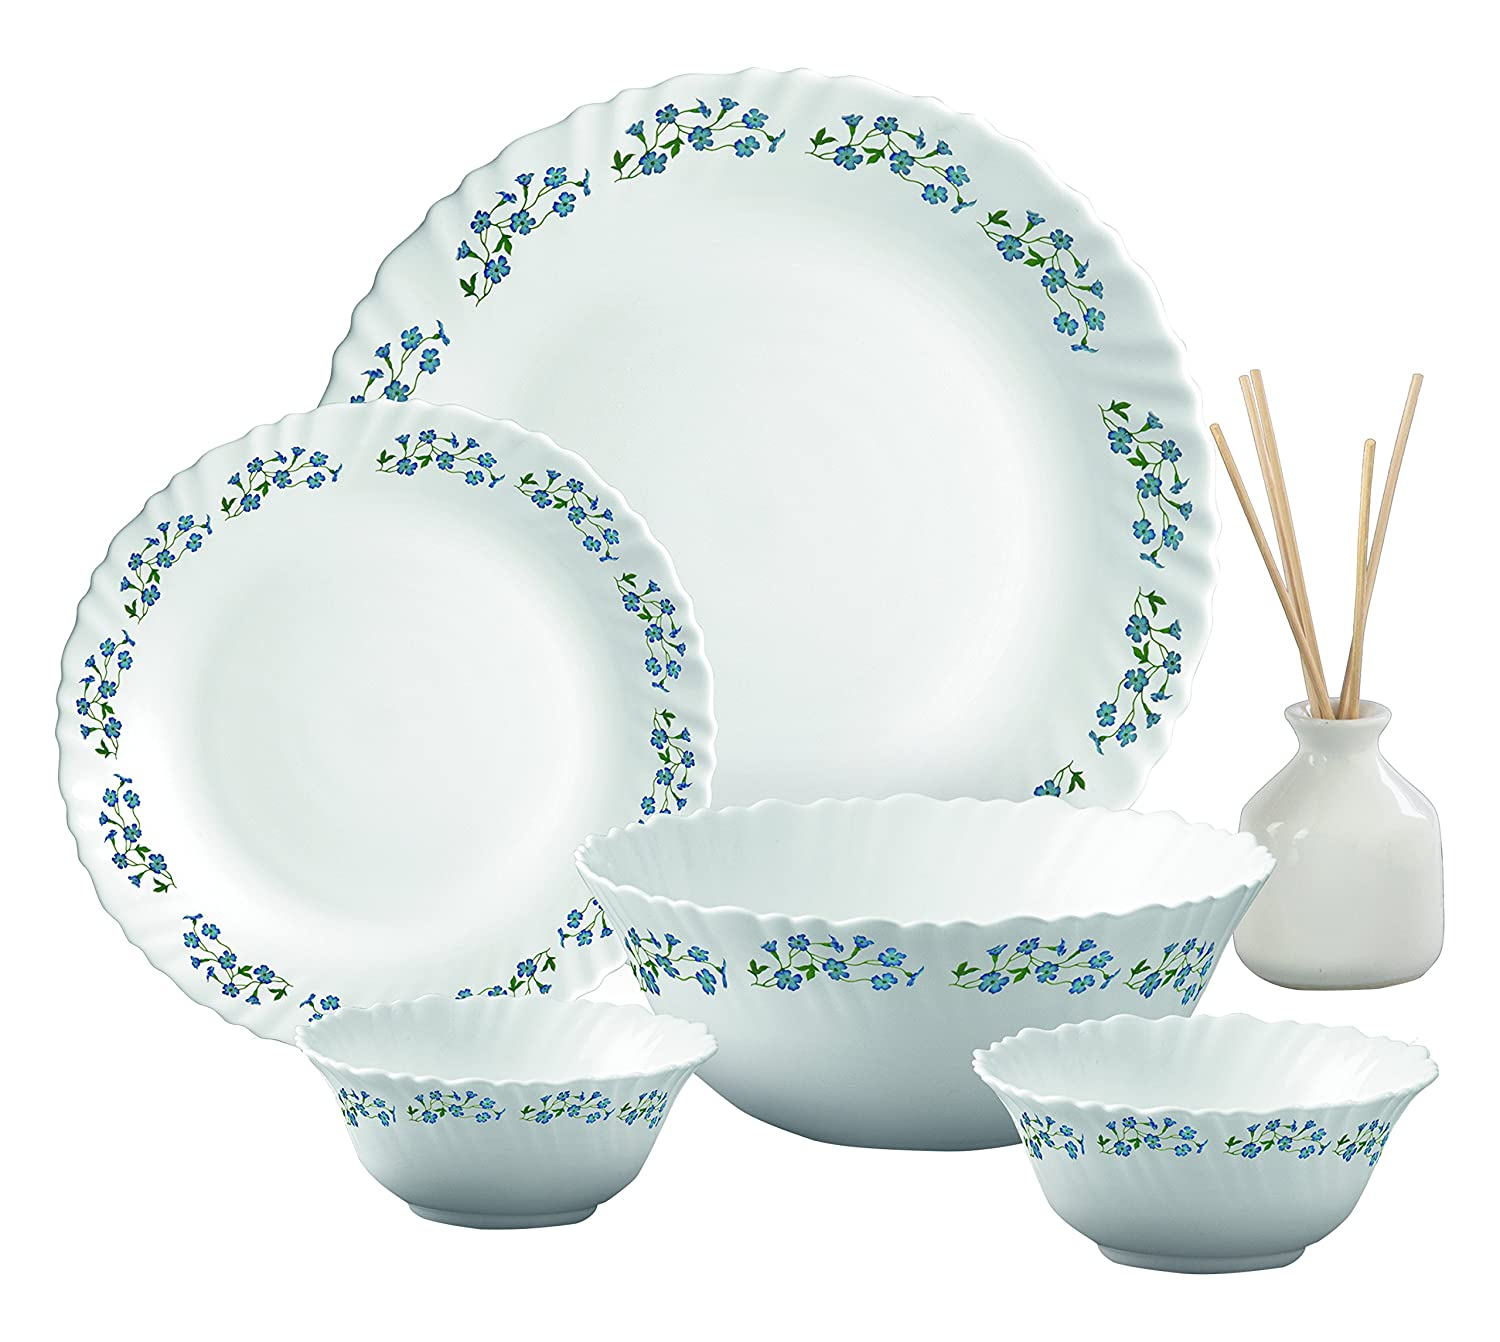 LaOpala Dew Dinner Set, 27-Pieces, White/Lavender